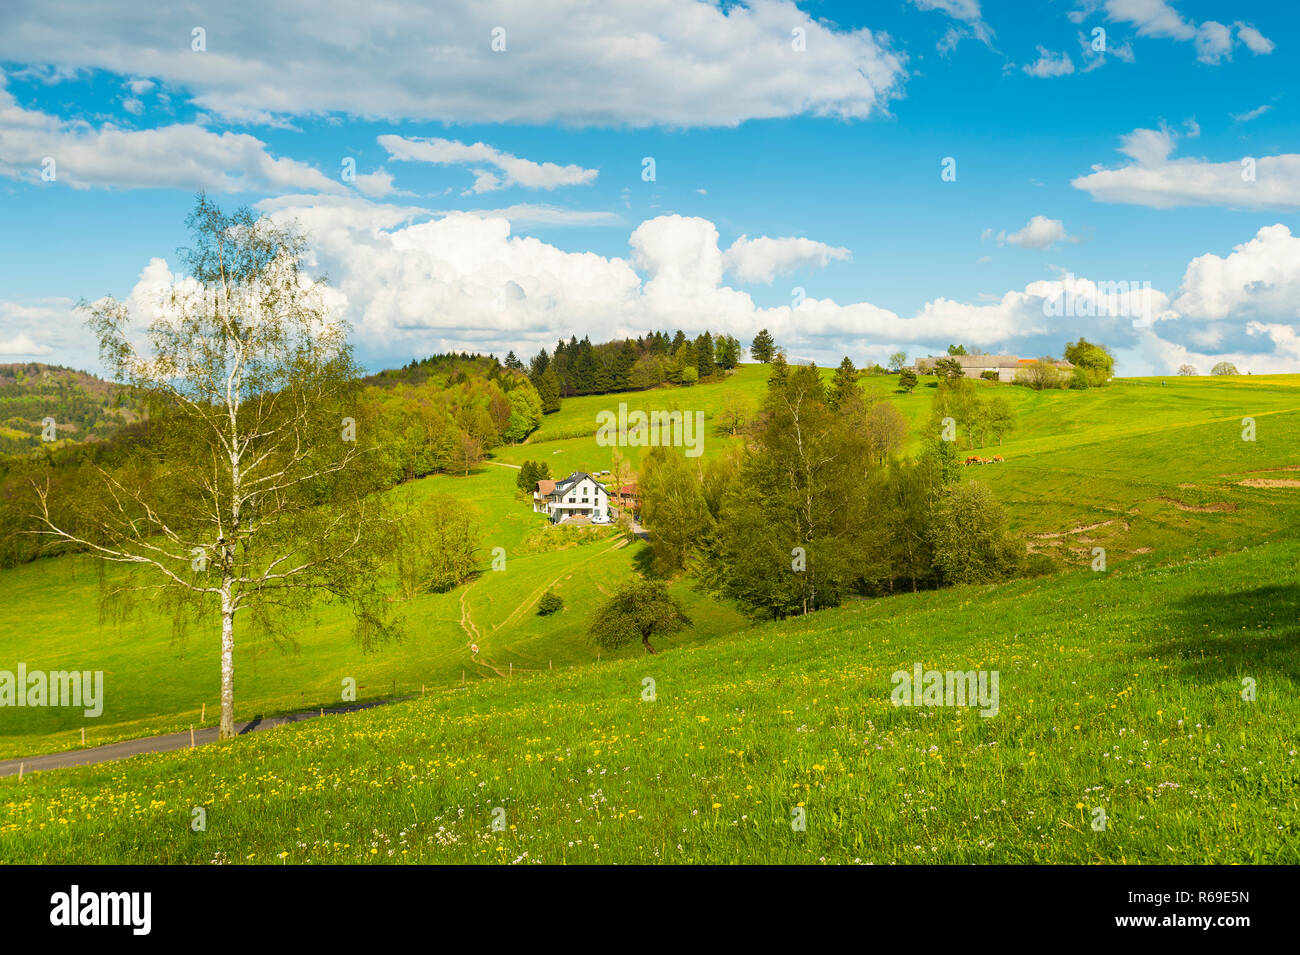 Single Farmstead Surrounded By Meadows Full Of Dandelion. Stock Photo